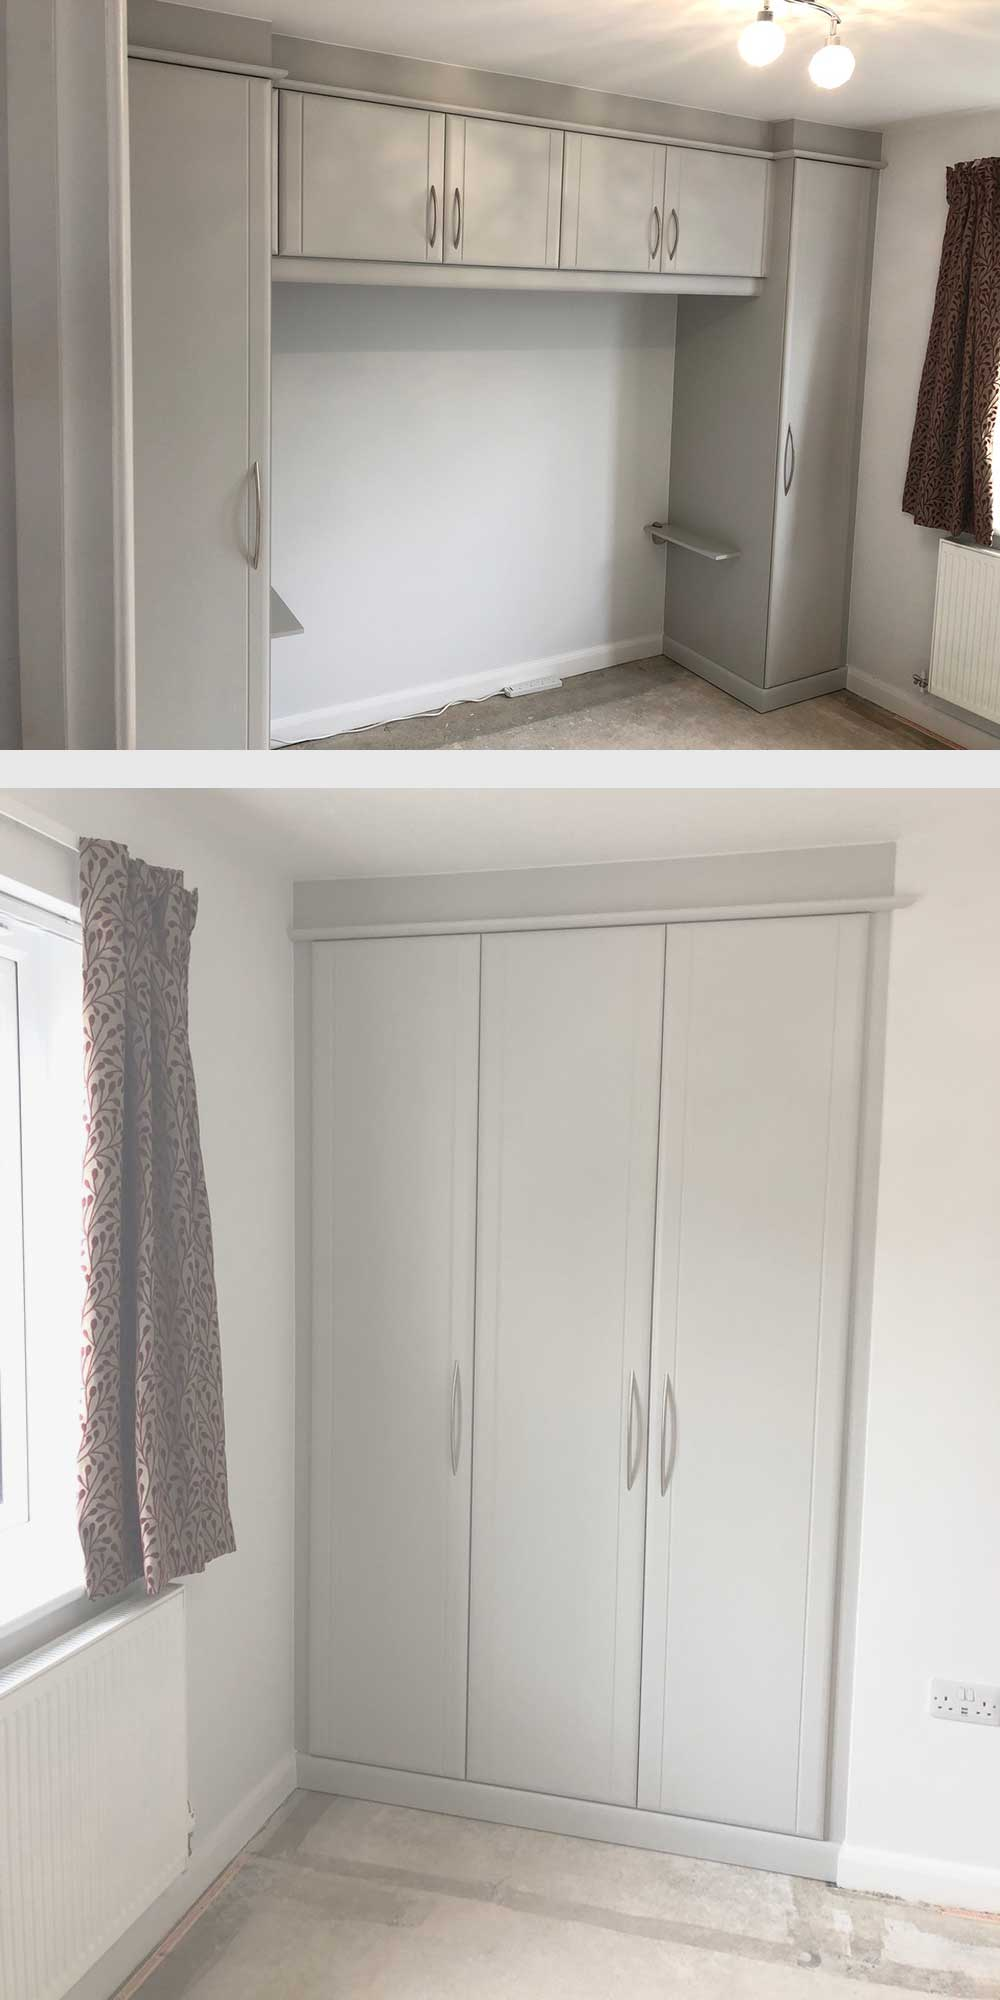 mr-bennets wardrobe doors